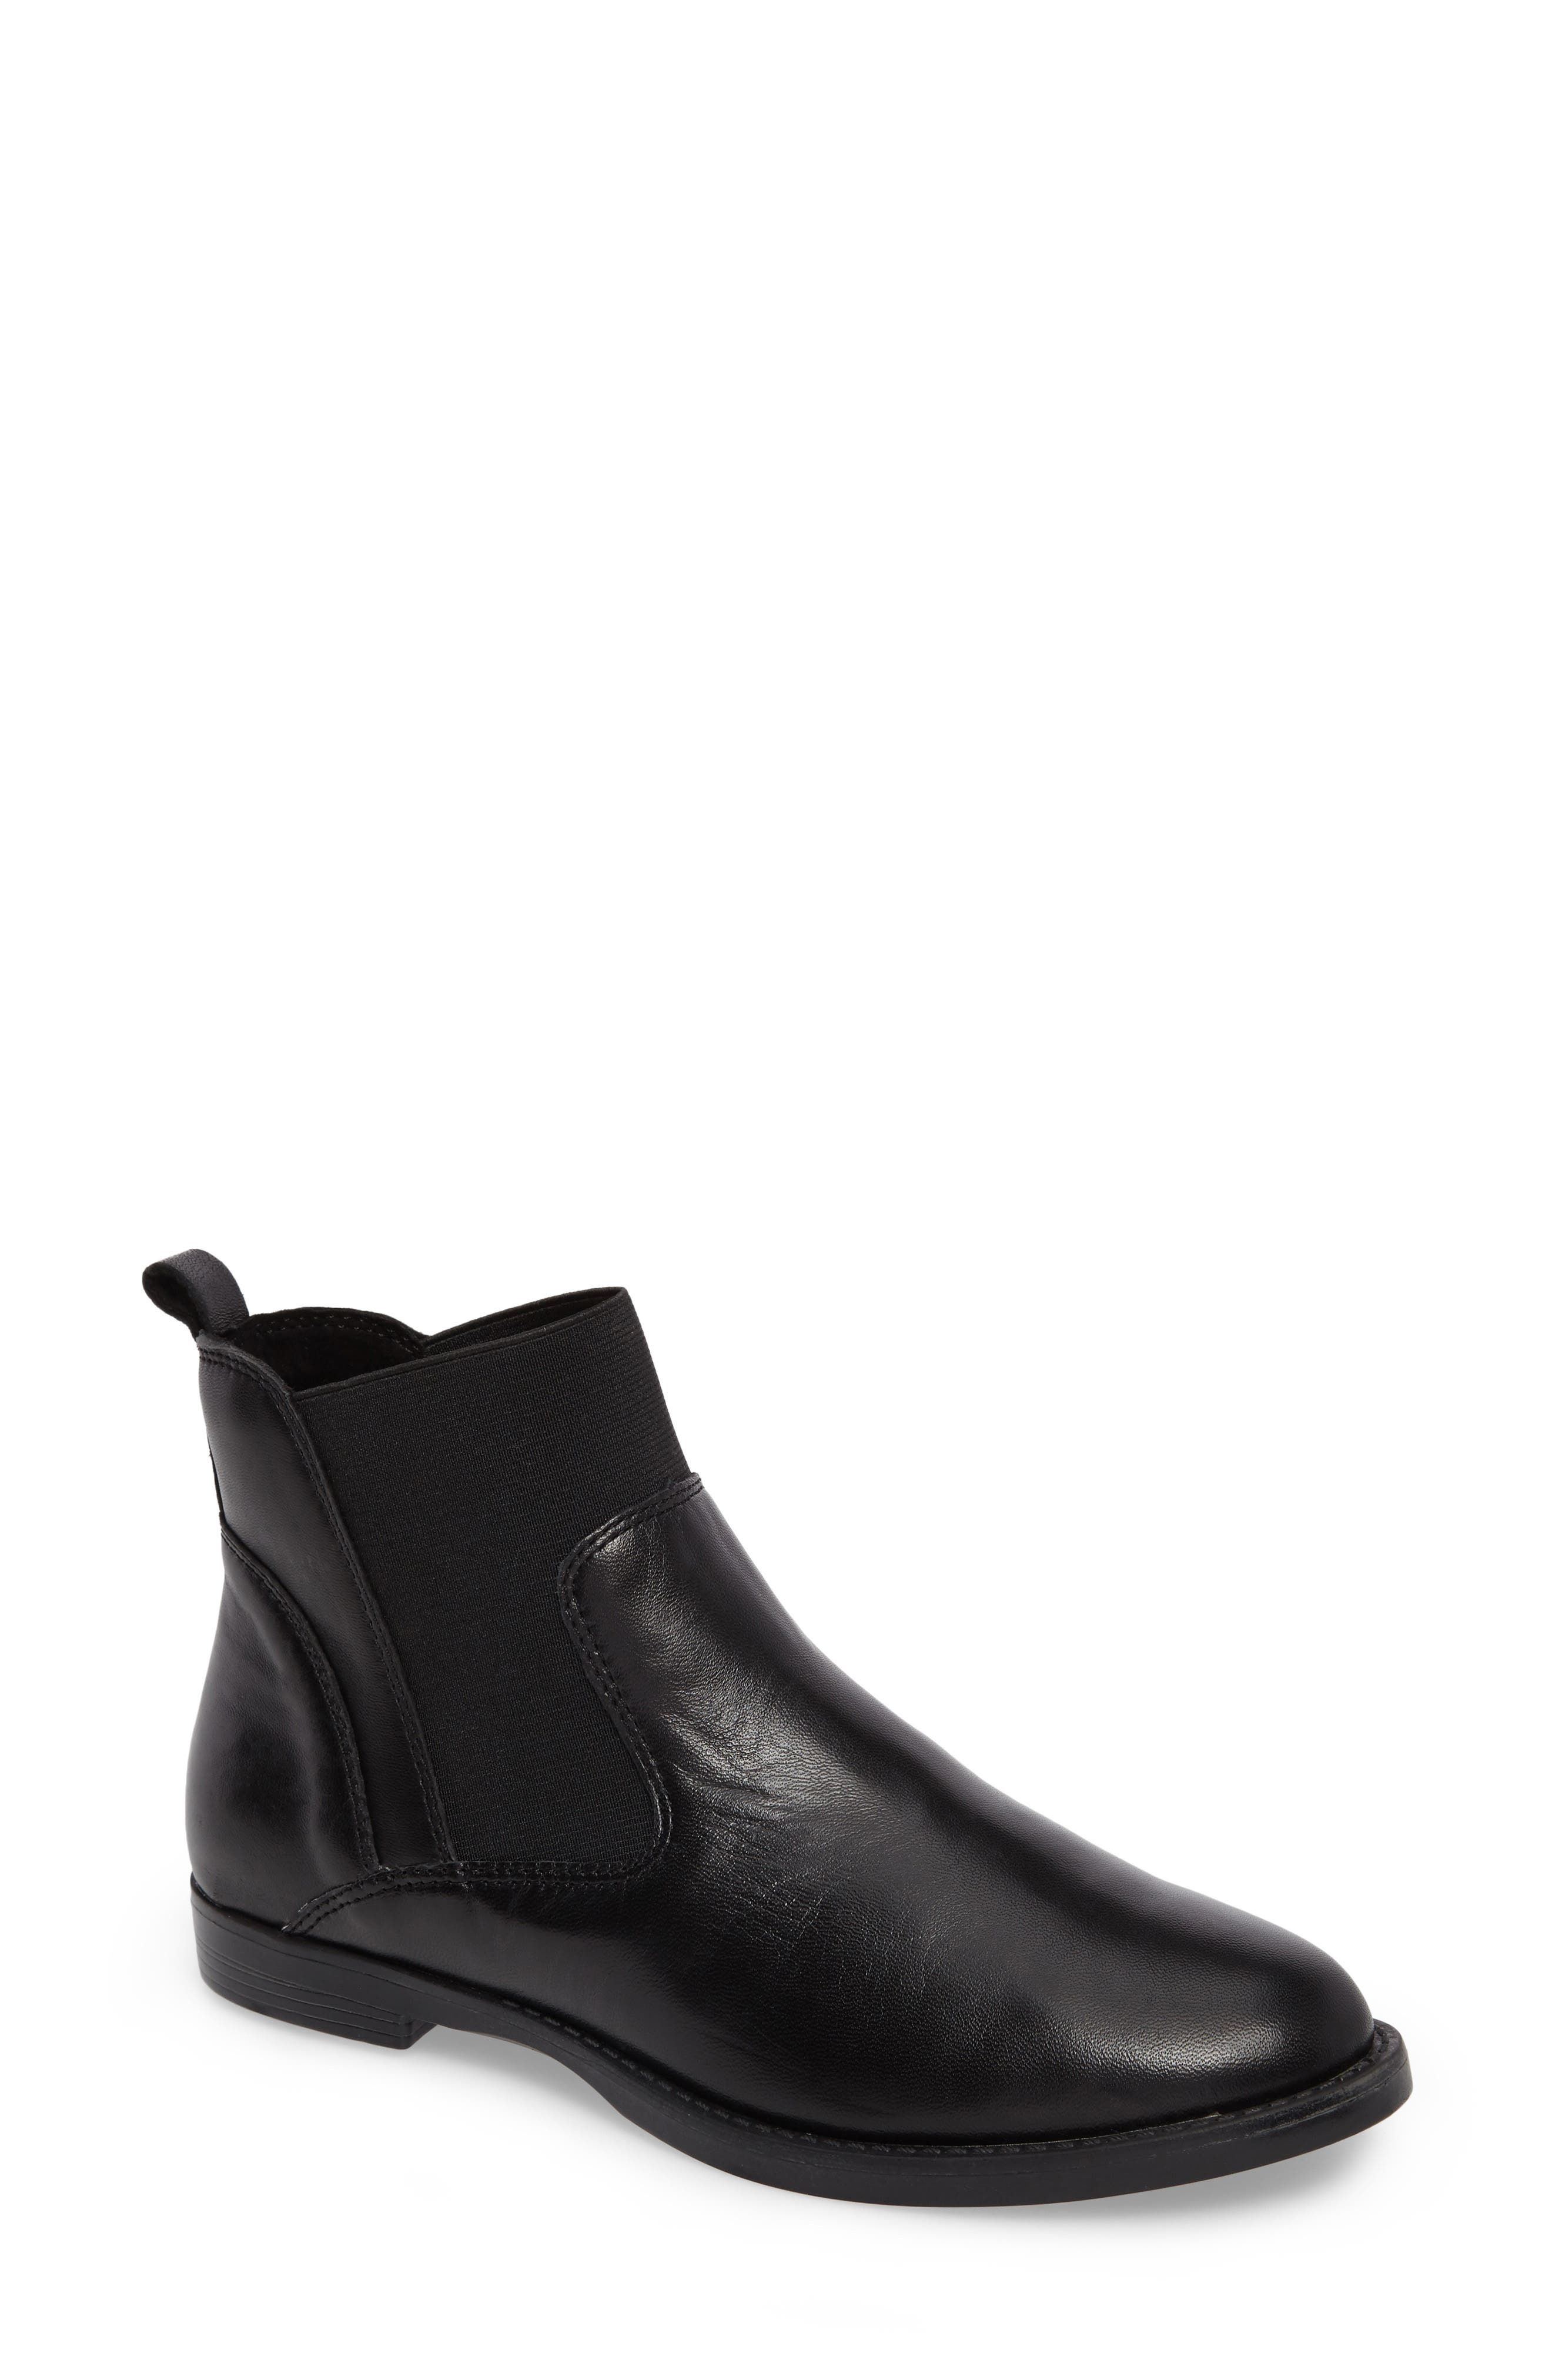 Rayna Chelsea Boot,                         Main,                         color, 001